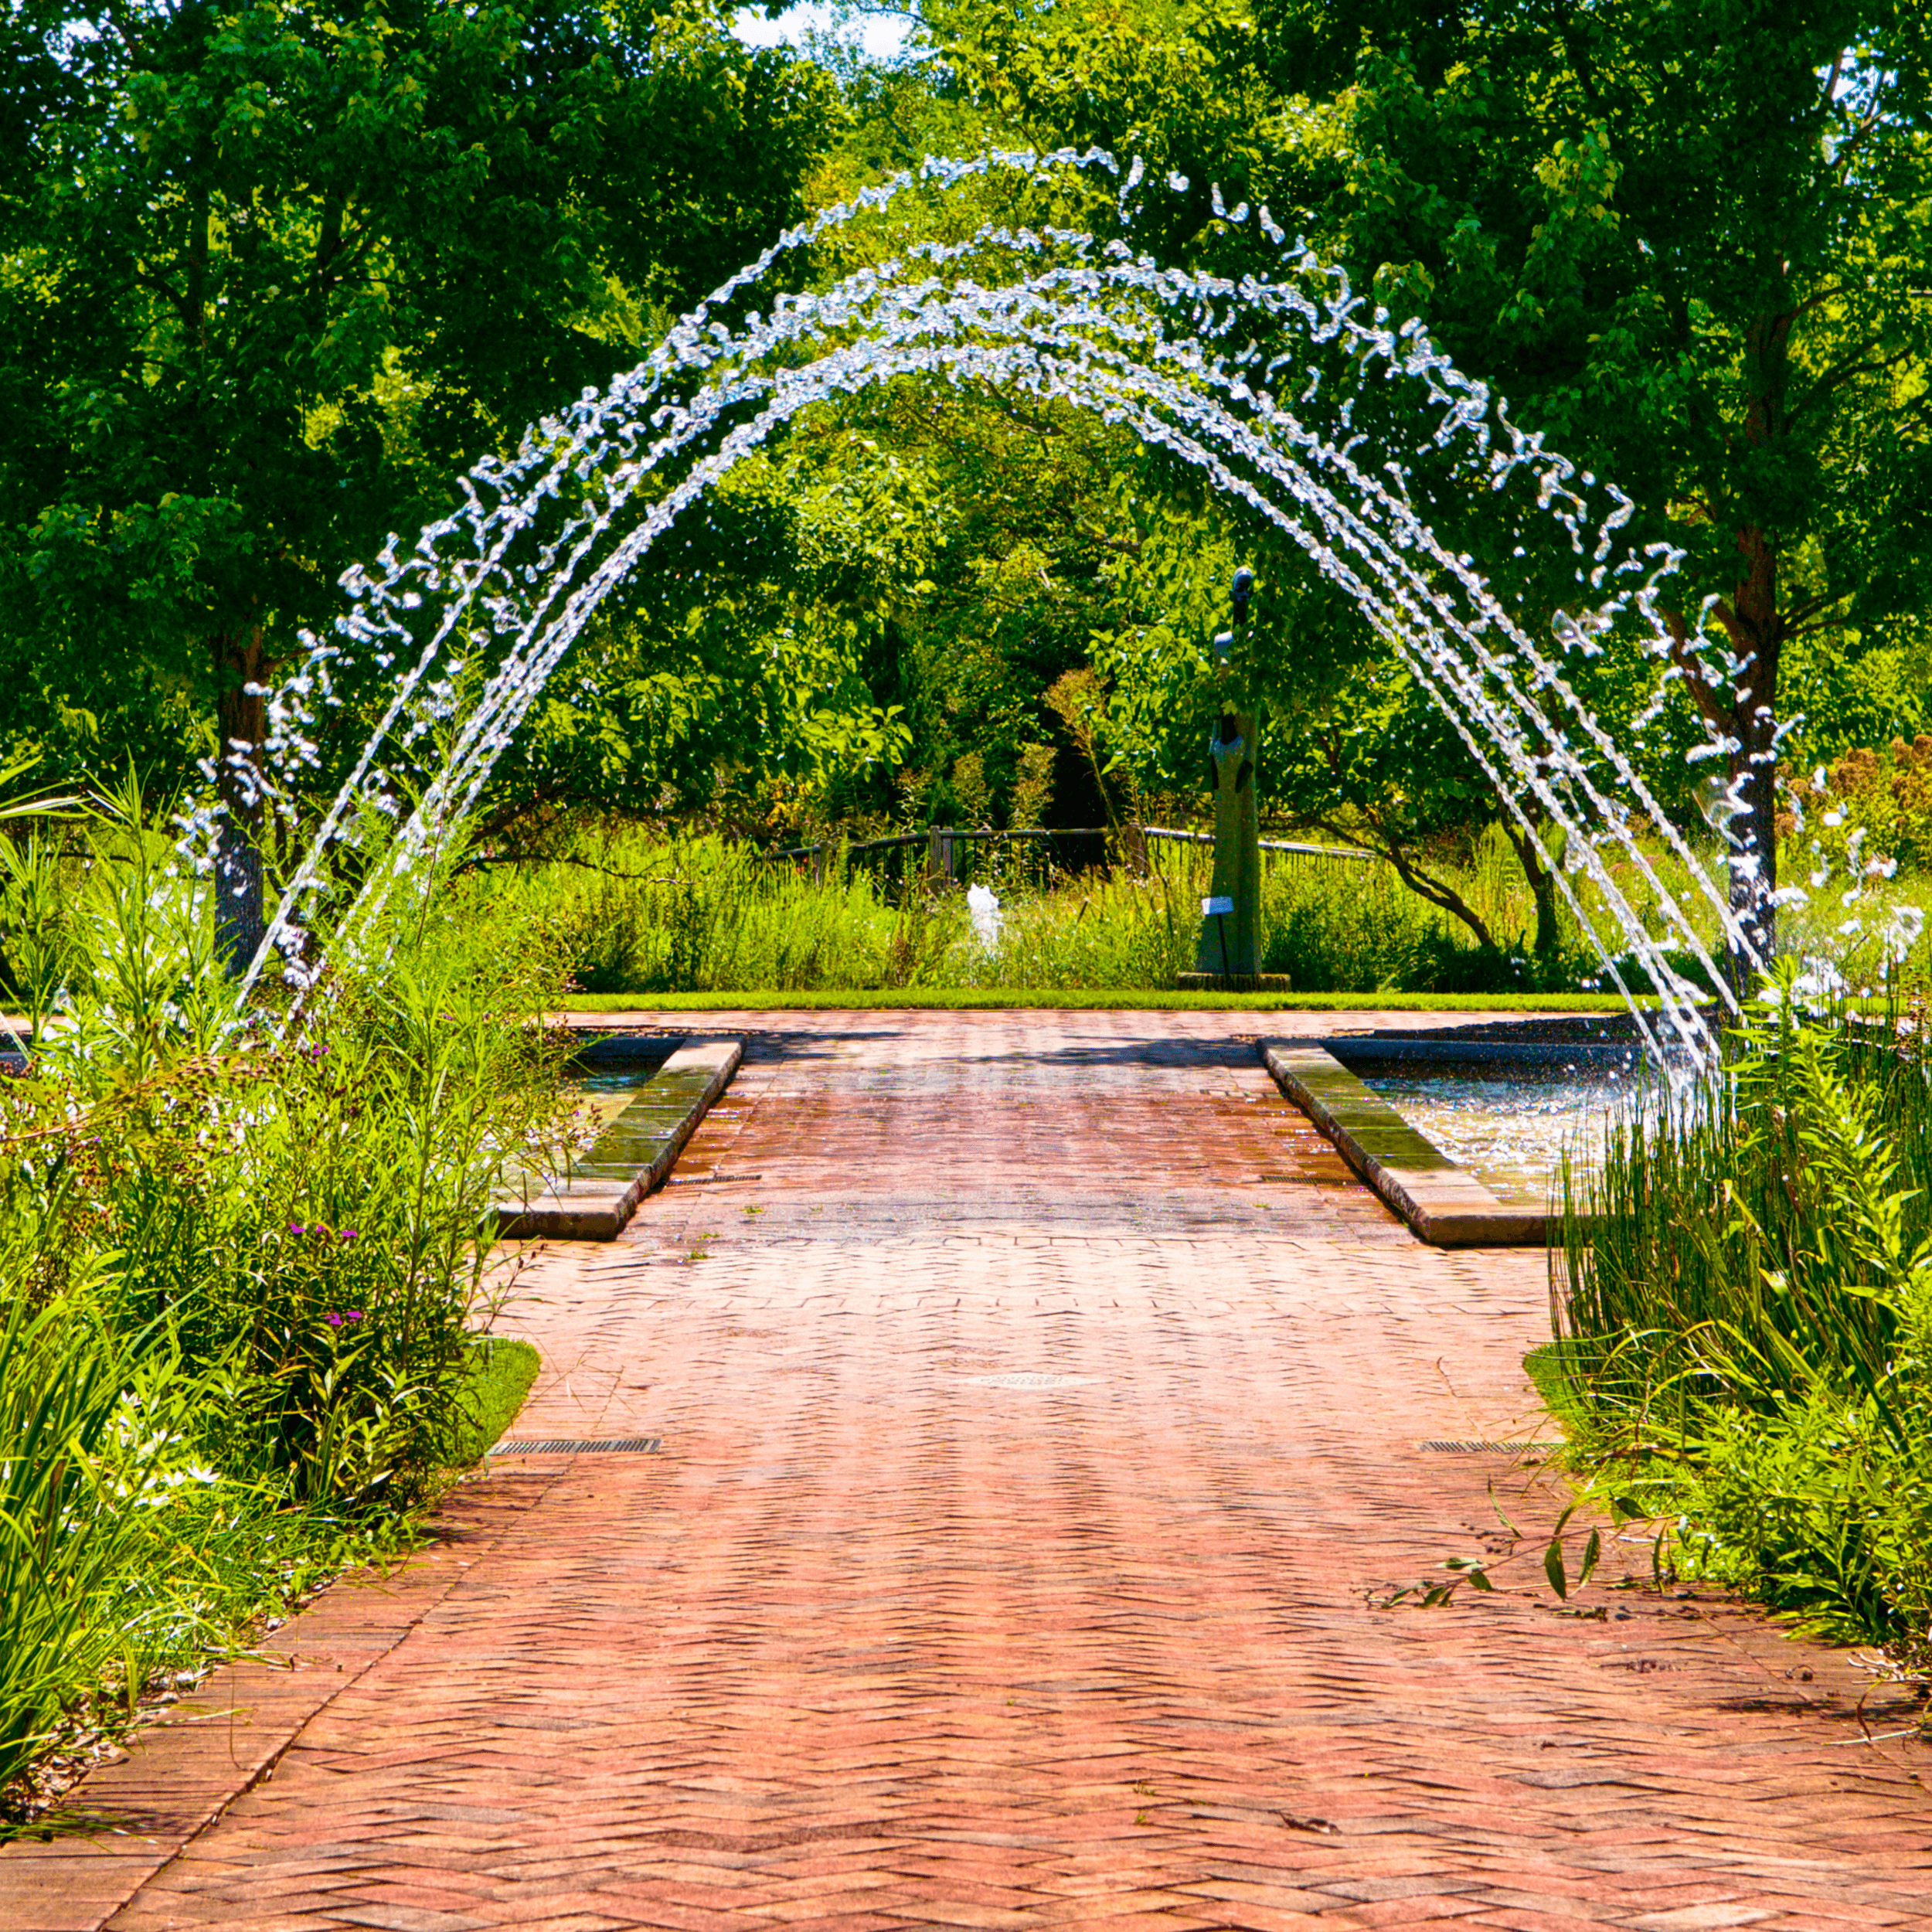 """The  Home and Garden Television (HGTV)  named the Garden one of the nation's """"20 Great Gardens"""". There are so many things to do and to see for everybody. Nature lovers, photographers, kids will enjoy the time there.  Some visitors take a chance and go underneath this unusual fountain over-arching  Magnolia Allée . But be careful, you might get wet."""